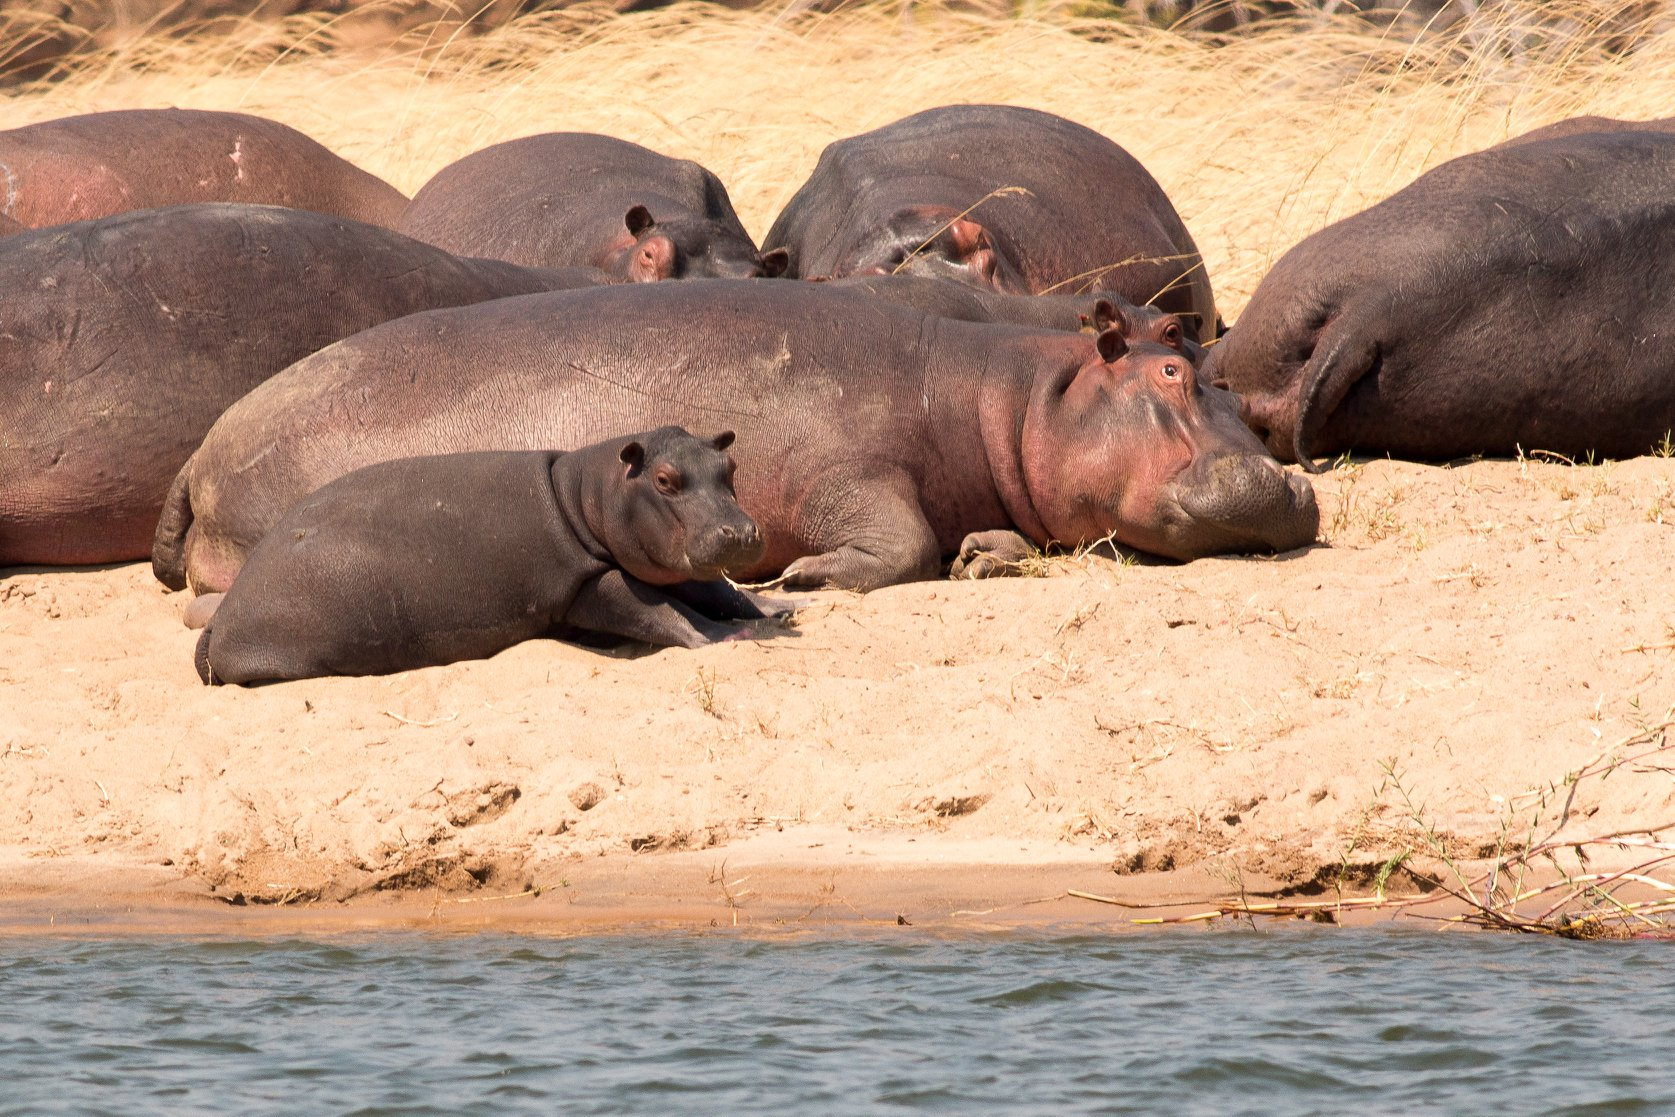 Hippos, one of many threatened species of herbivores, rest on the protected shores of the Zambezi River in Mana Pools National Park in Zimbabwe. (Photo credit: Edd Hammill)